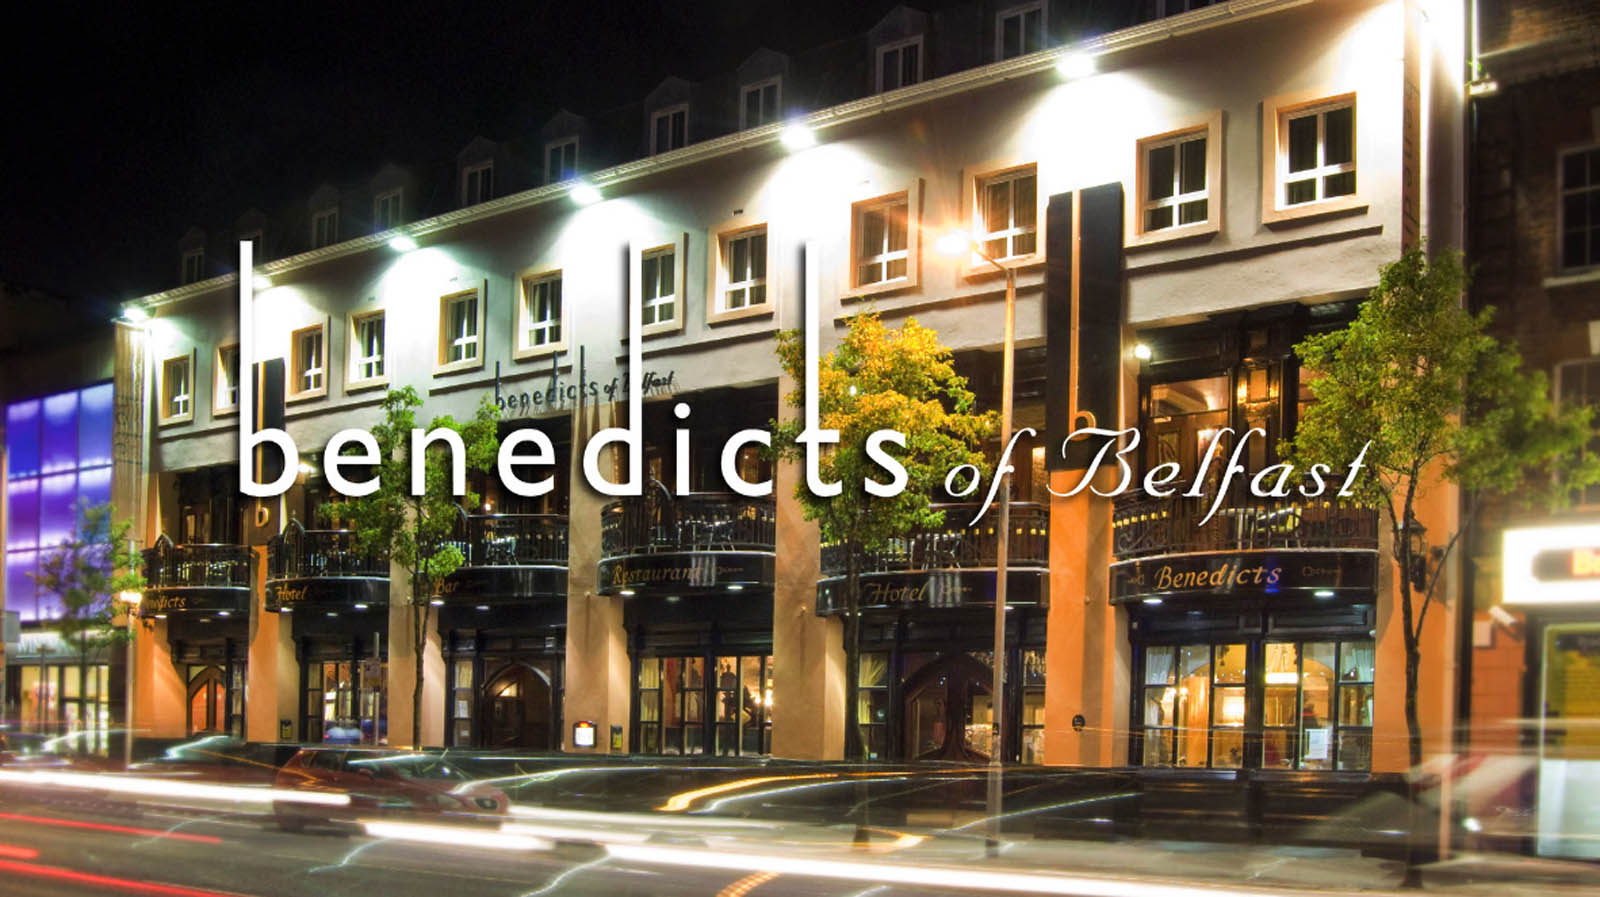 Cinema commercial for Benedicts of Belfast showing the exterior of this Belfast hotel at night - Bout Yeh video production Belfast, Northern Ireland